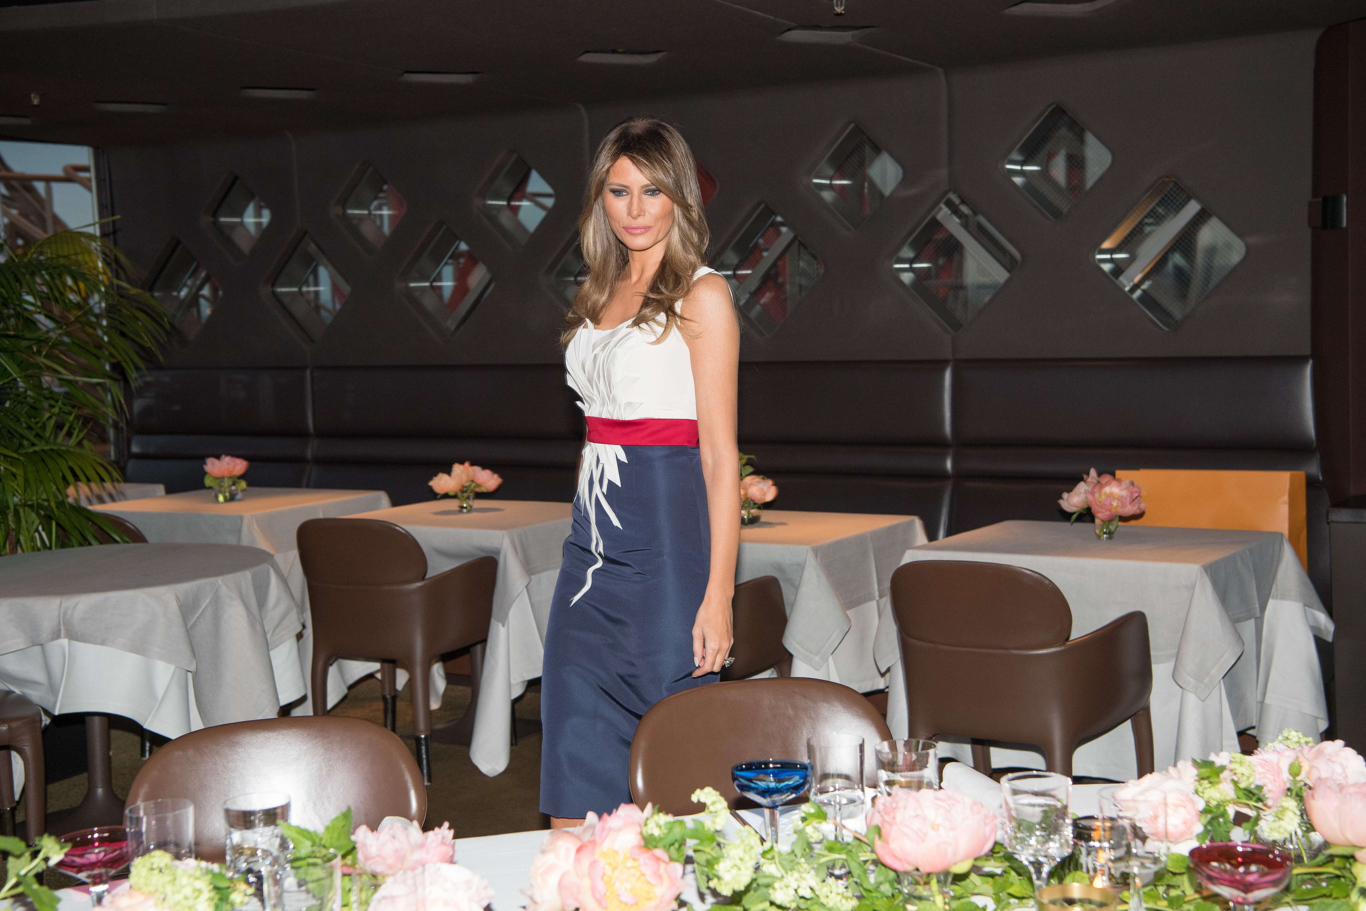 First lady Melania Trump poses at the Jules Verne restaurant before a private dinner at the Eiffel Tower in Paris, France, July 13, 2107.President Donald Trump visit to Paris, France - 13 Jul 2017